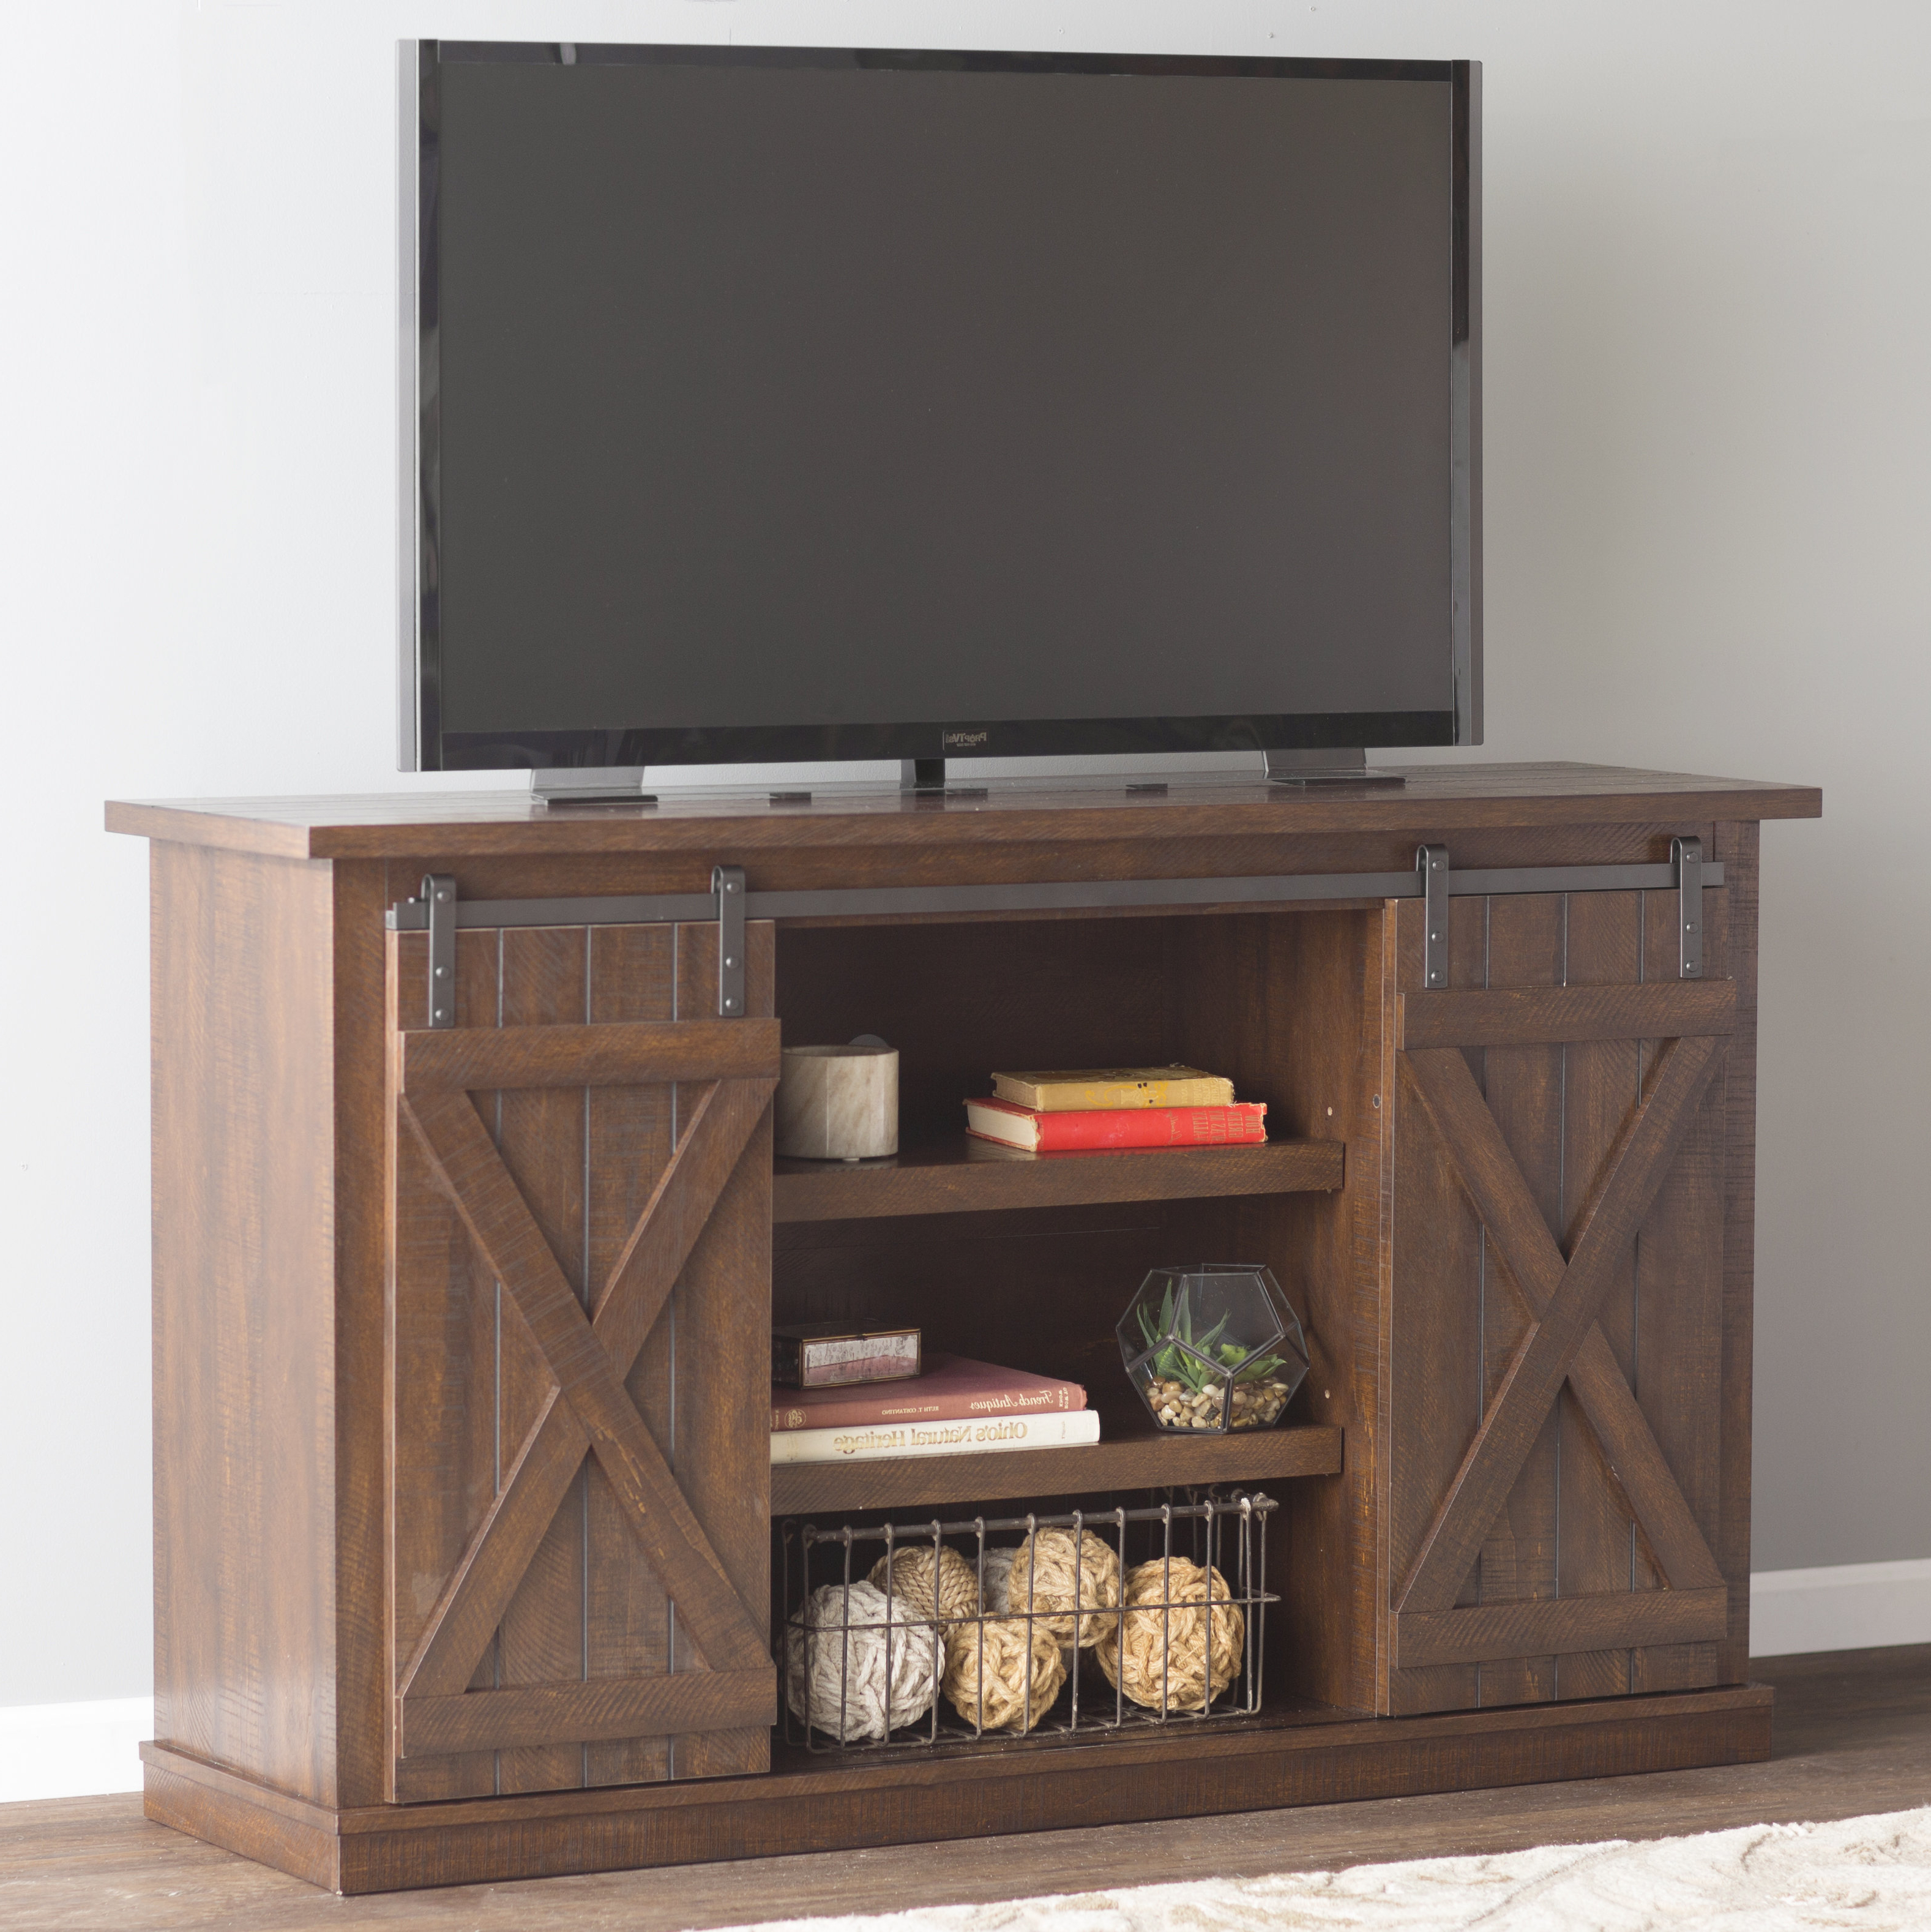 Kenzie 72 Inch Open Display Tv Stands Inside Preferred 72 Inch Tv Stand (View 2 of 20)